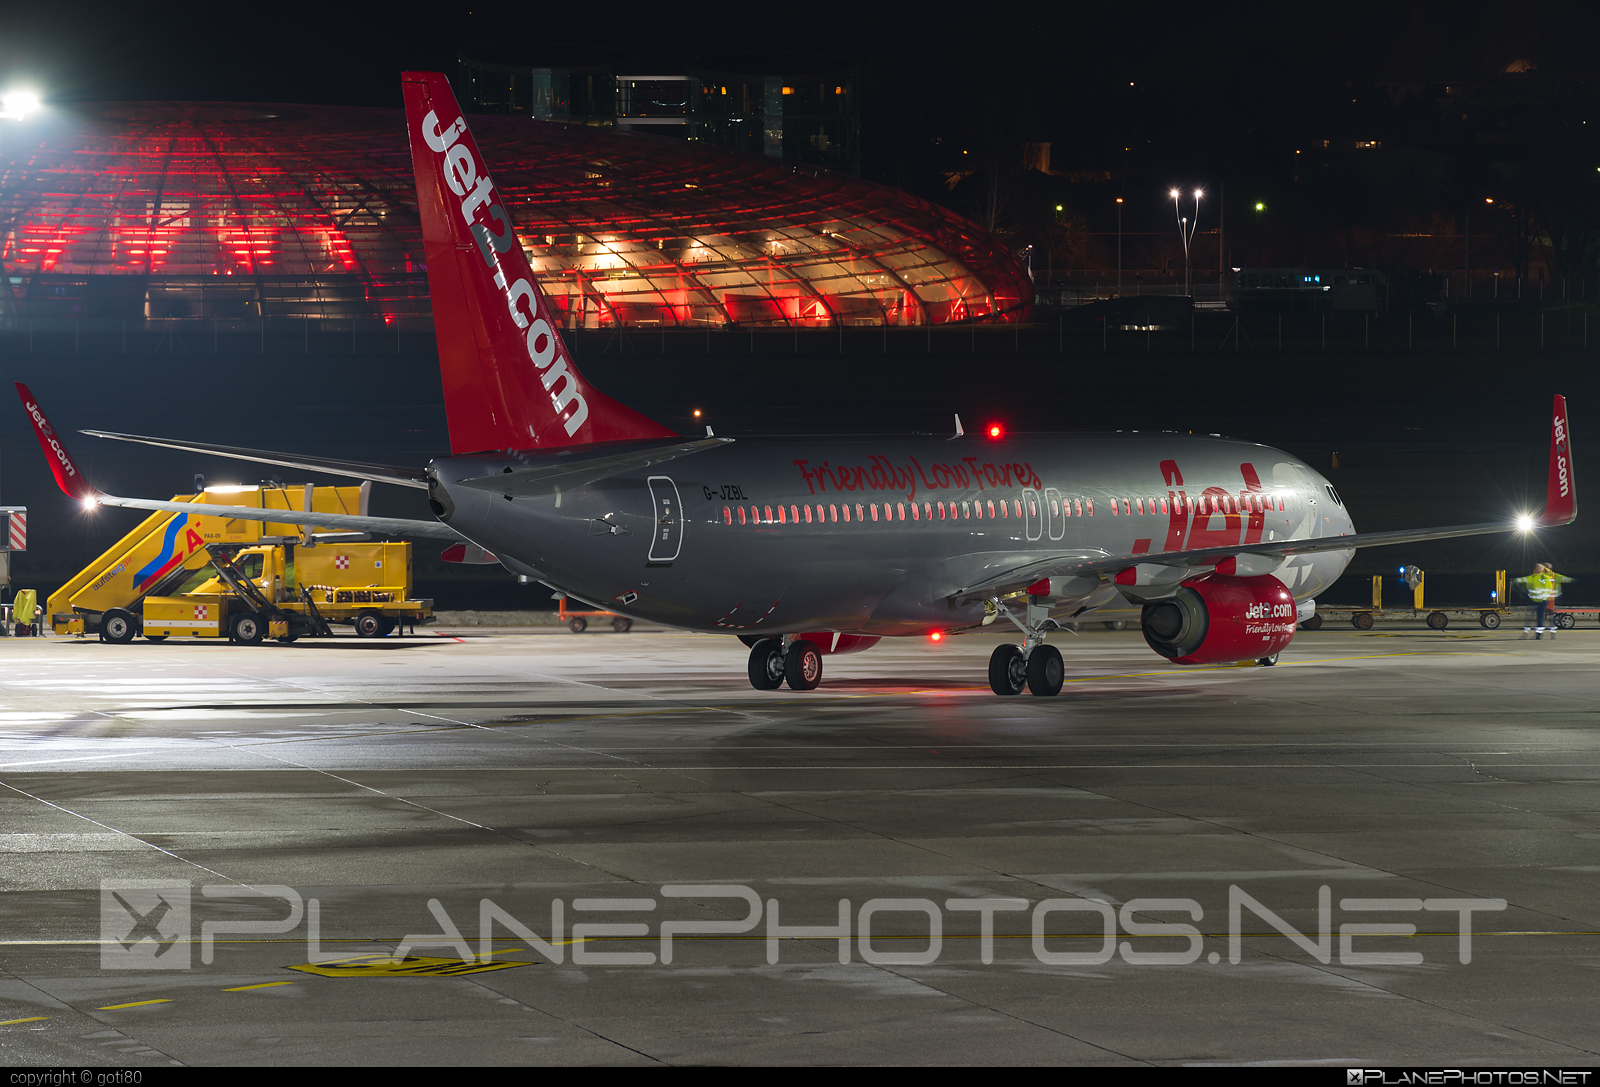 Boeing 737-800 - G-JZBL operated by Jet2 #b737 #b737nextgen #b737ng #boeing #boeing737 #jet2